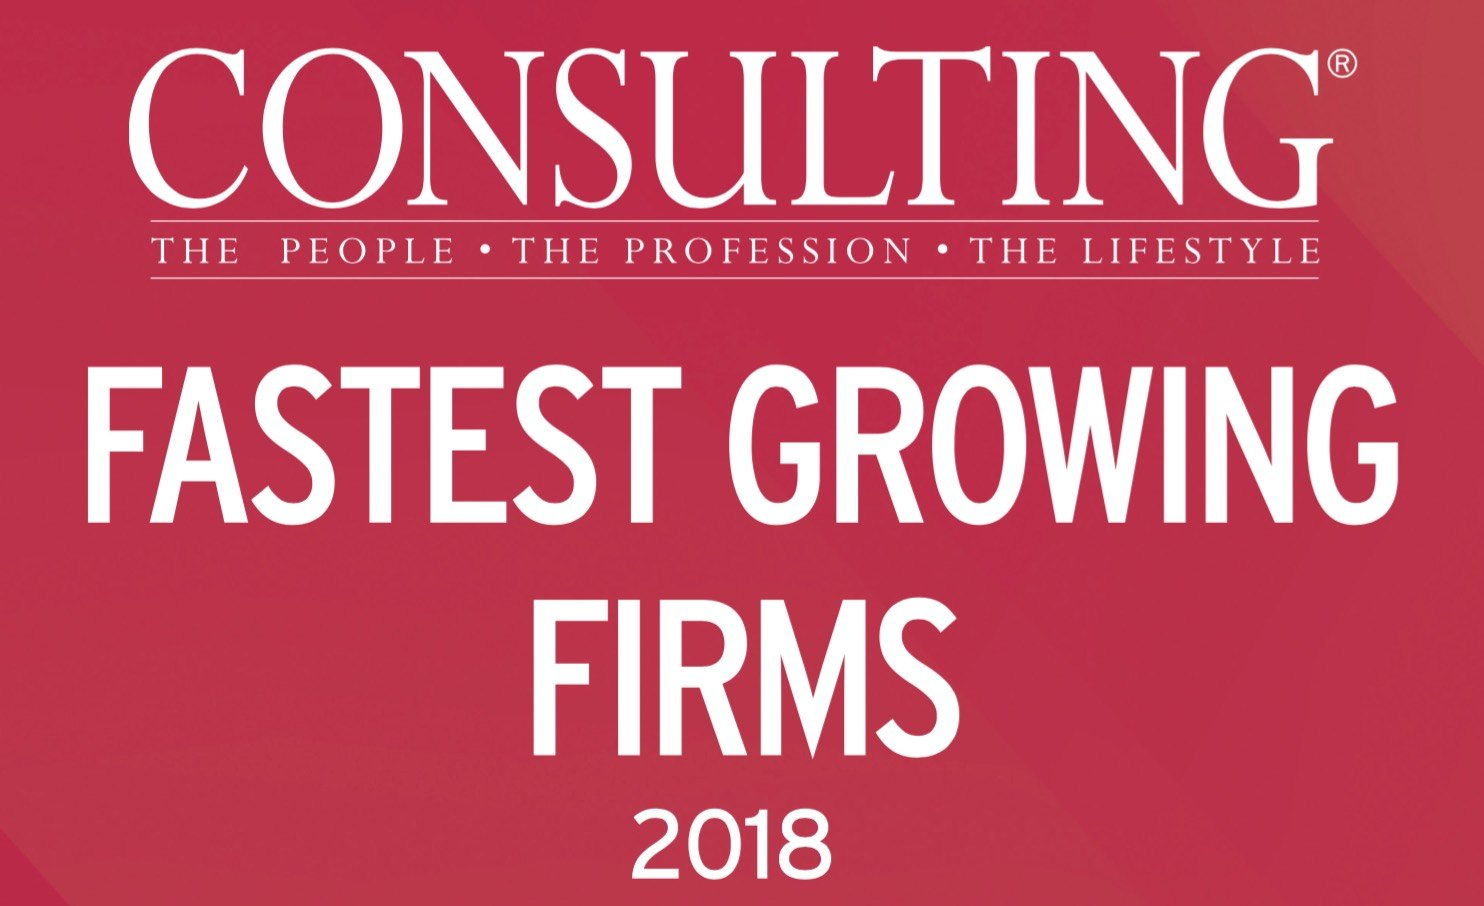 "<a href=""http://consultingmag.com/fastest-growing-firms"">The 2018 Fastest Growing Firms Rankings are revealed! Check it out now!</a>"